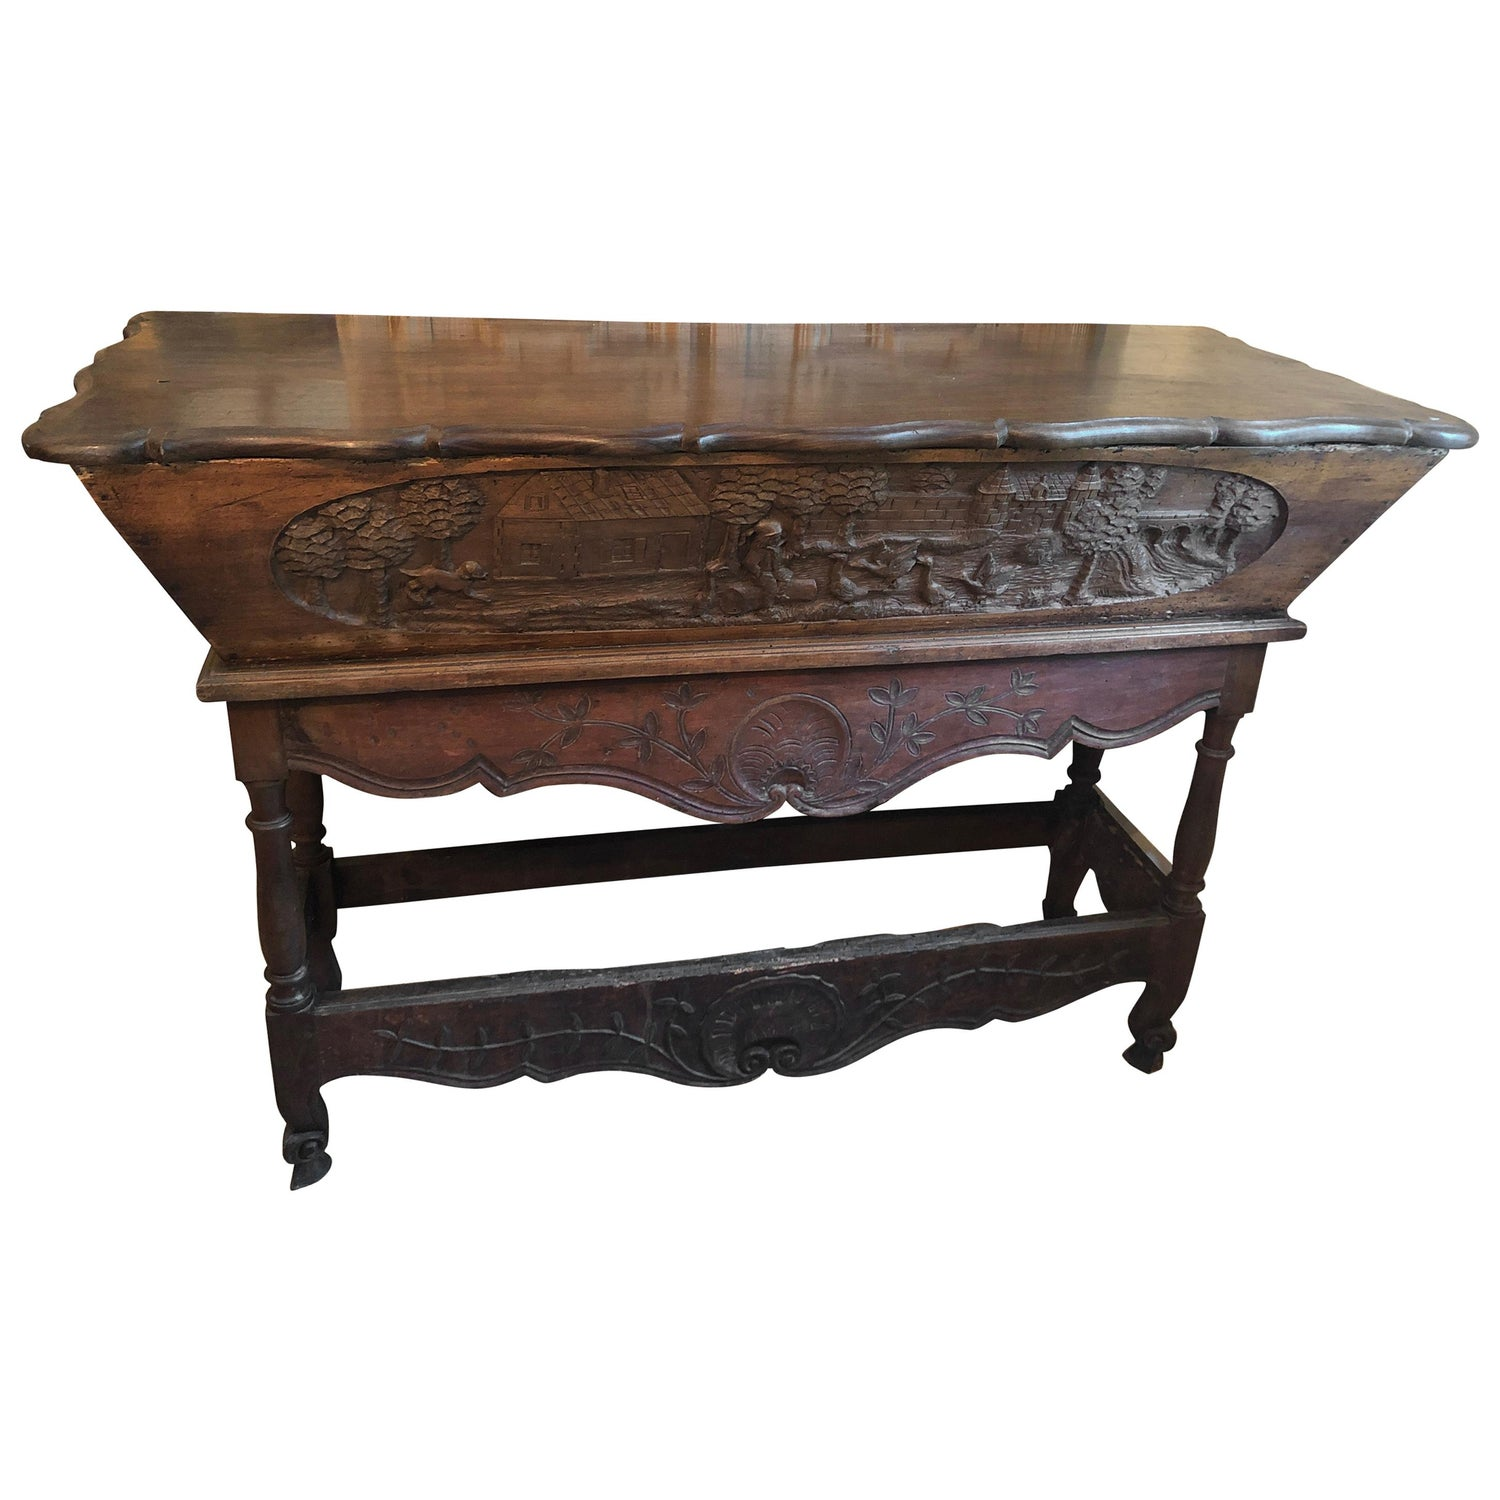 Cool Charming Antique Carved Wood Bread Making Console Table Andrewgaddart Wooden Chair Designs For Living Room Andrewgaddartcom